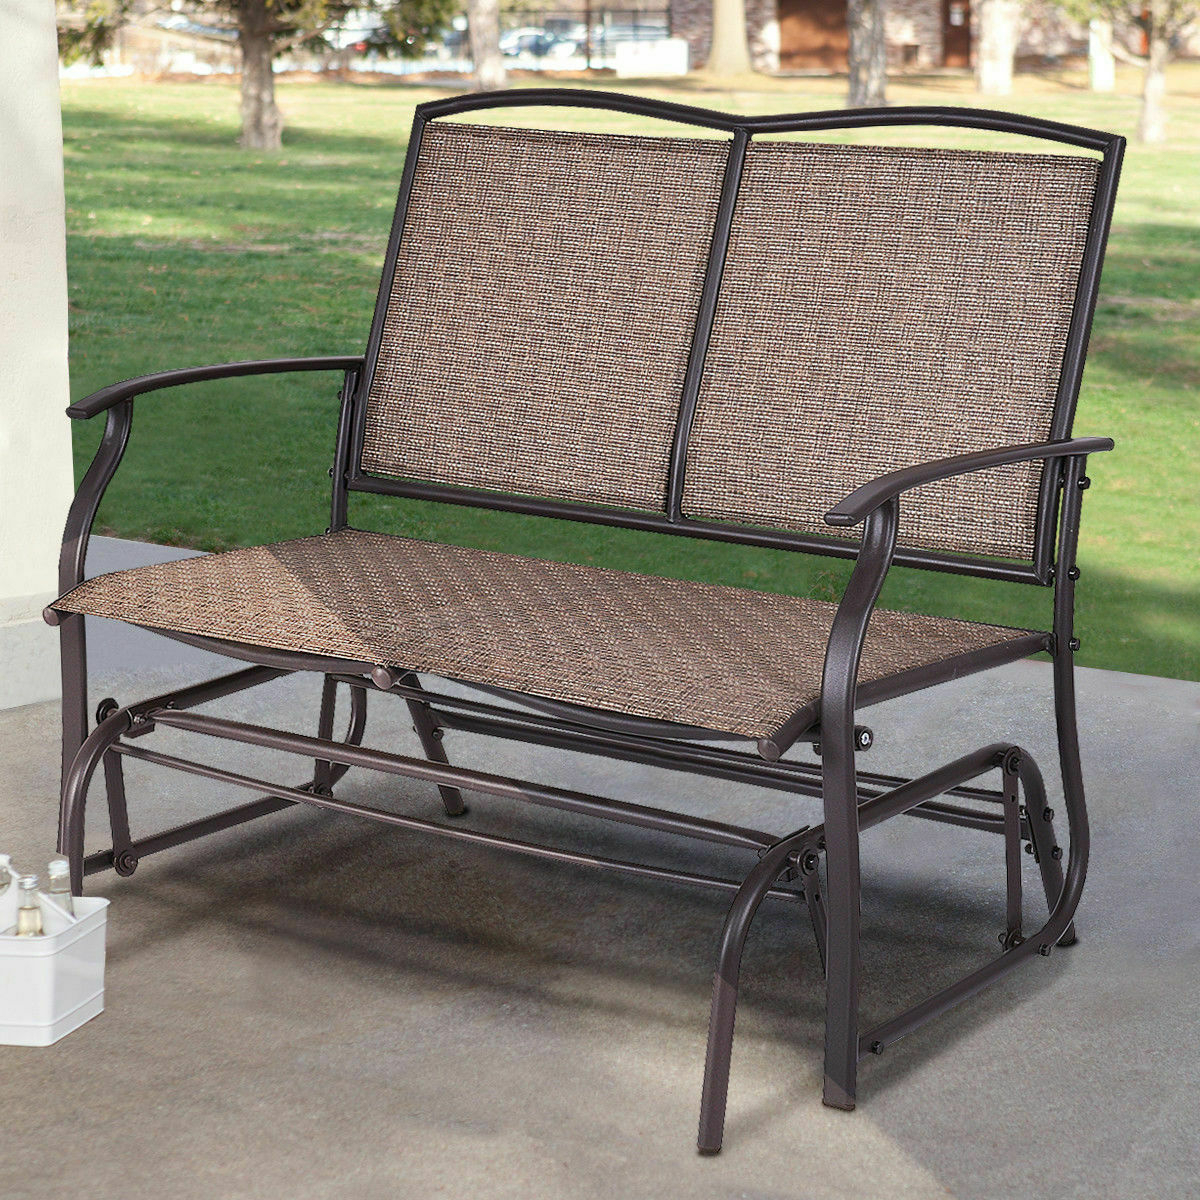 Patio Glider Rocking Bench Double 2 Person Chair Loveseat Armchair Backyard New Within Well Known Double Glider Loveseats (View 19 of 30)